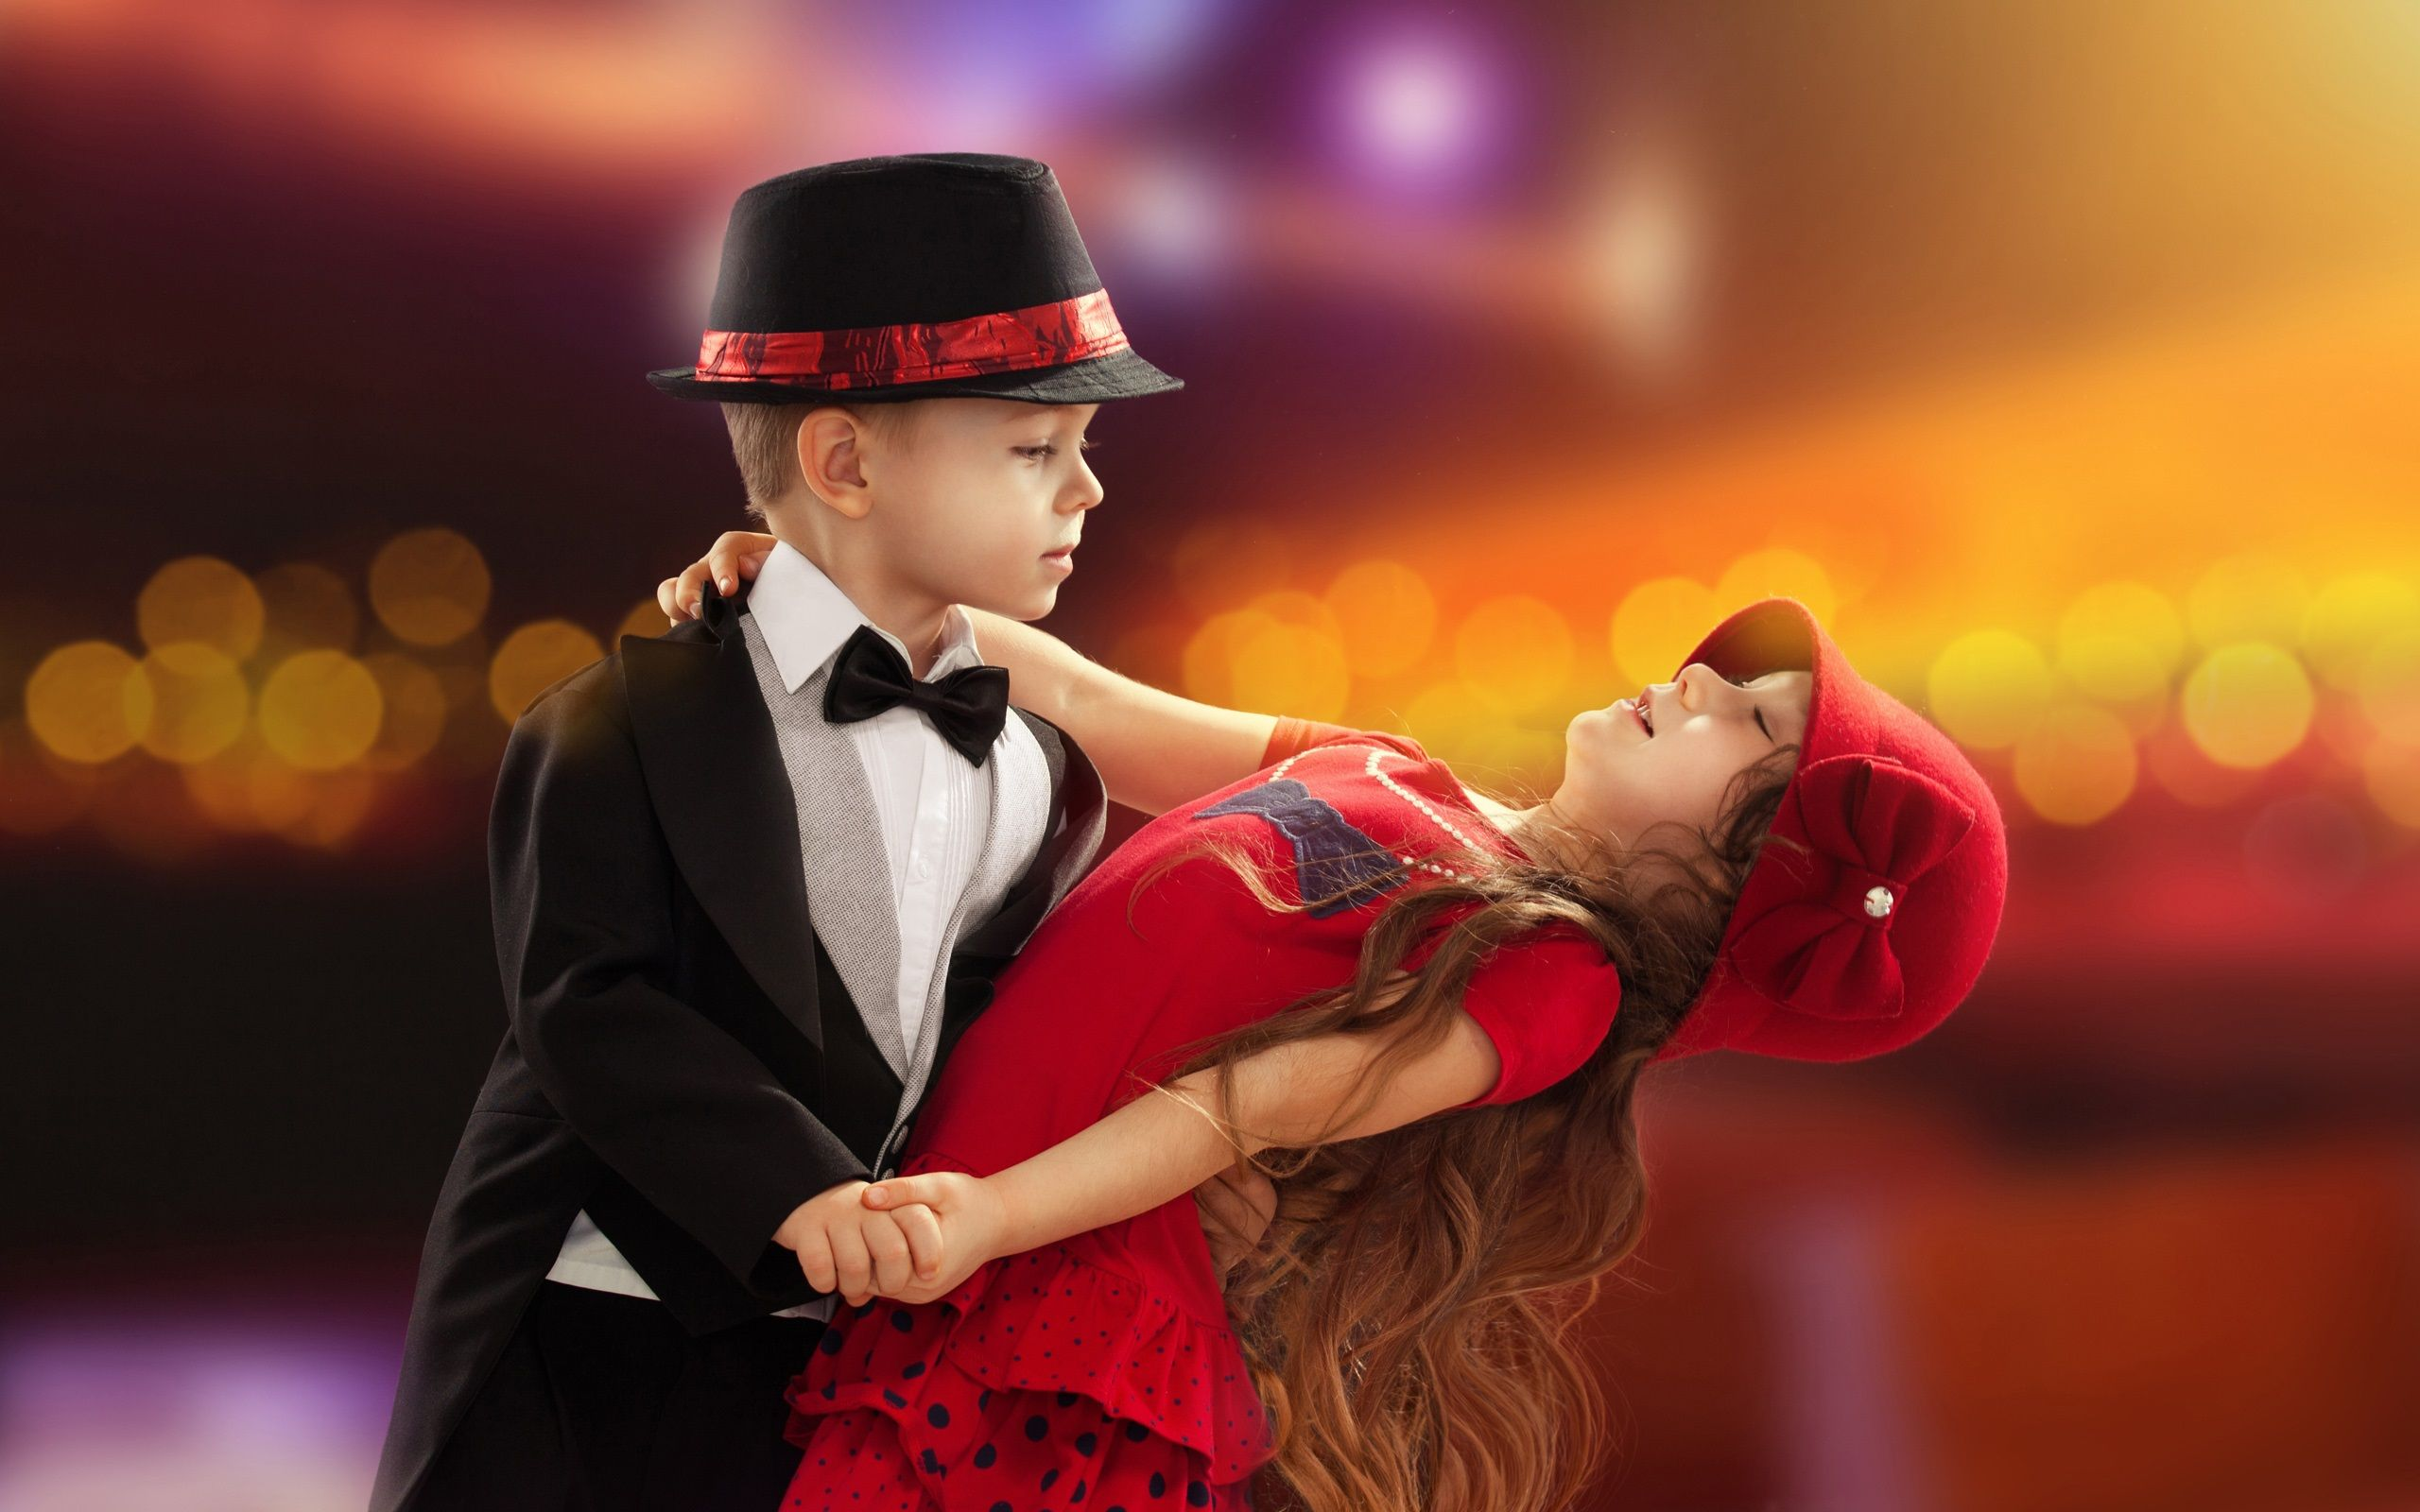 Beautiful Dance Cute Girl And Boy Child Wallpaper By Sakura Cute Baby Wallpaper Cute Images Cute Little Boys